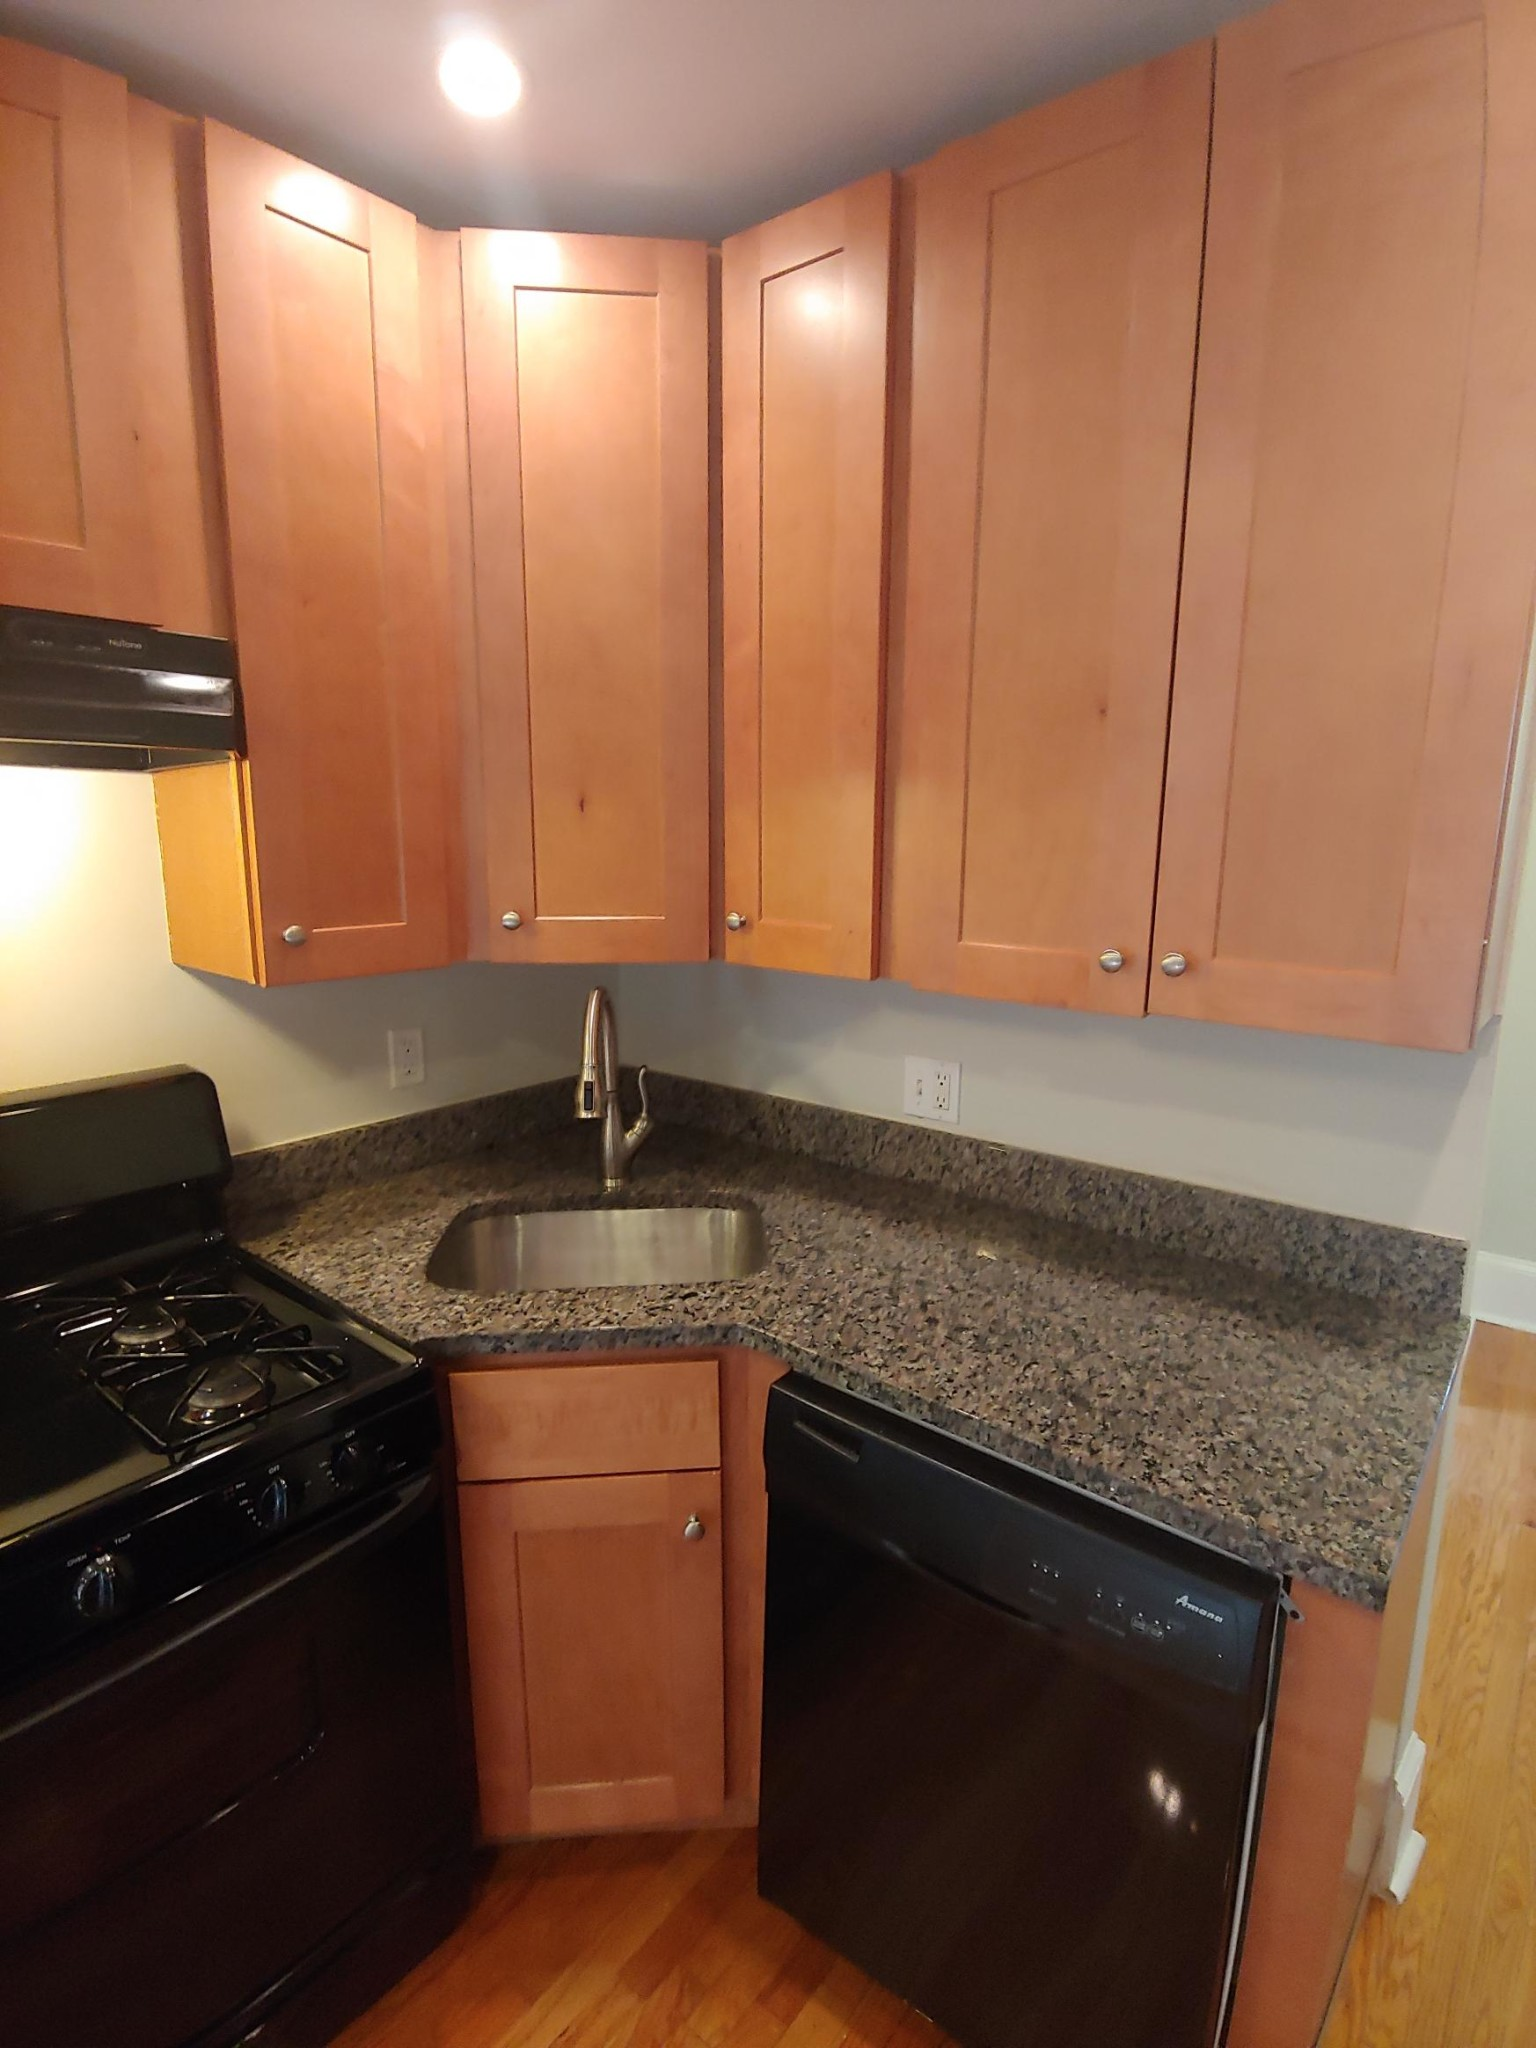 2 Beds, 1 Bath apartment in Boston, Beacon Hill for $2,800